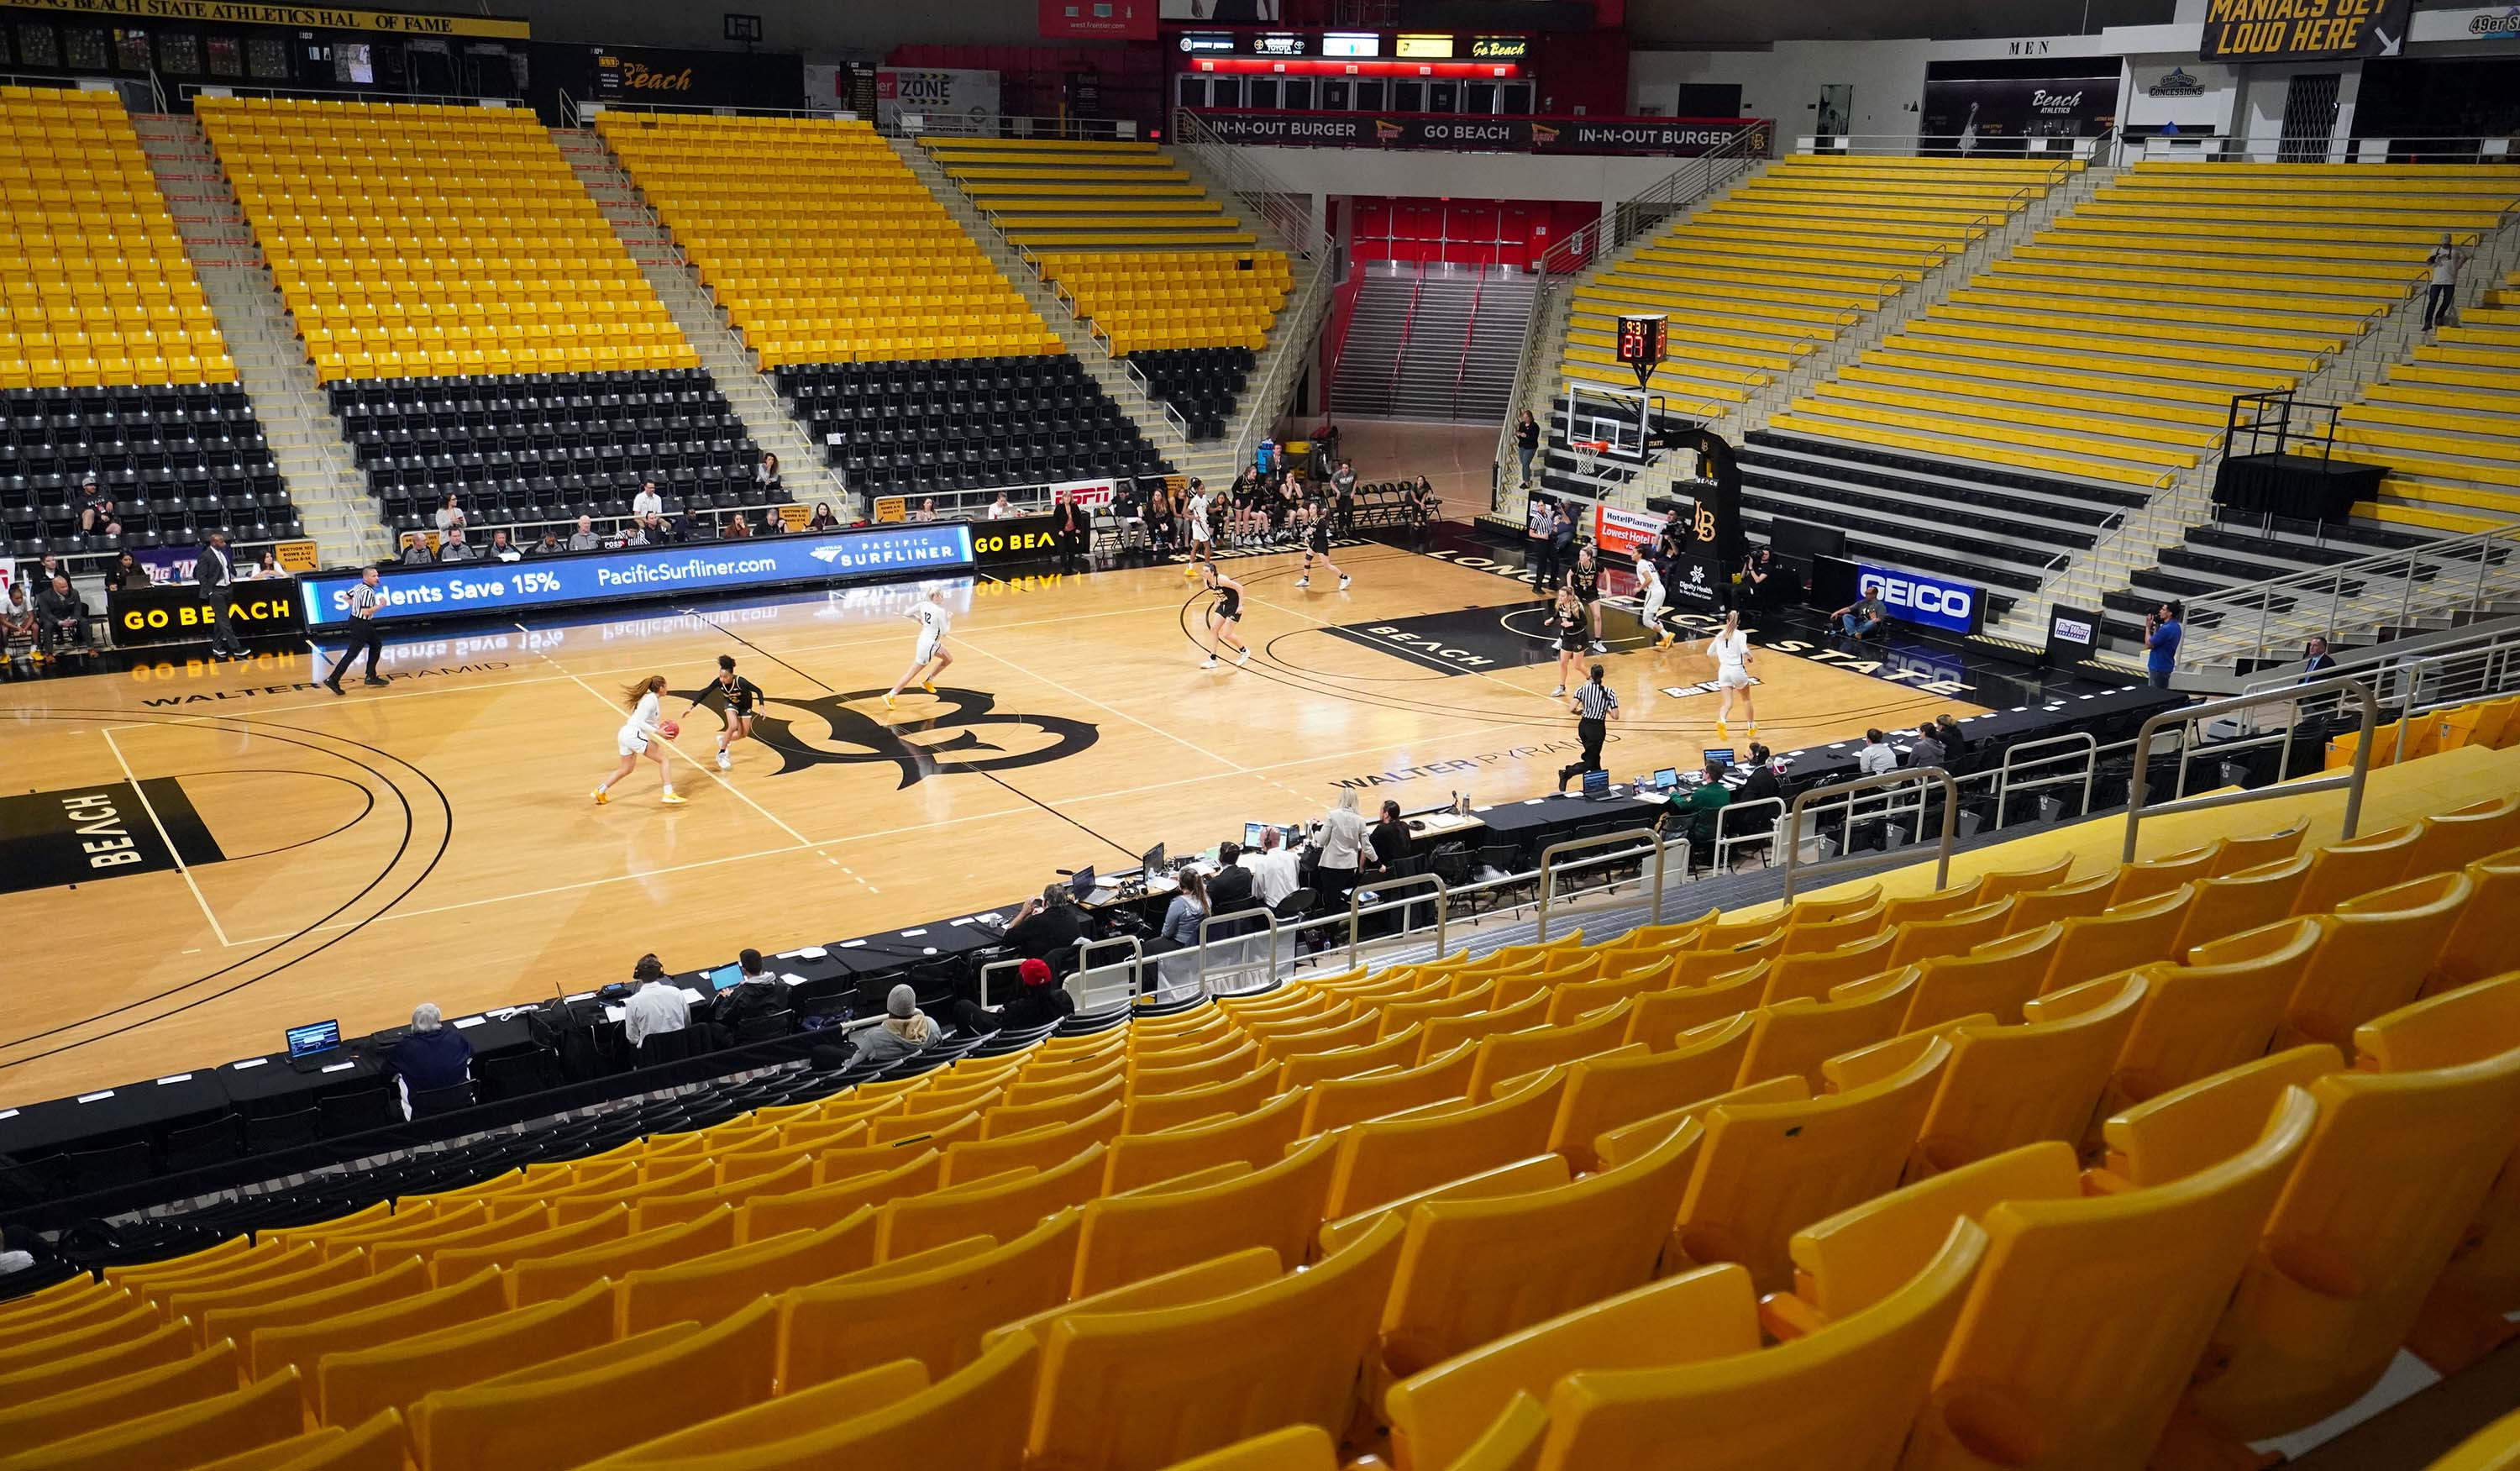 The Long Beach State and Cal Poly women's basketball teams play in an empty Walter Pyramid arena during the Big West tournament in Long Beach, California on March 10.